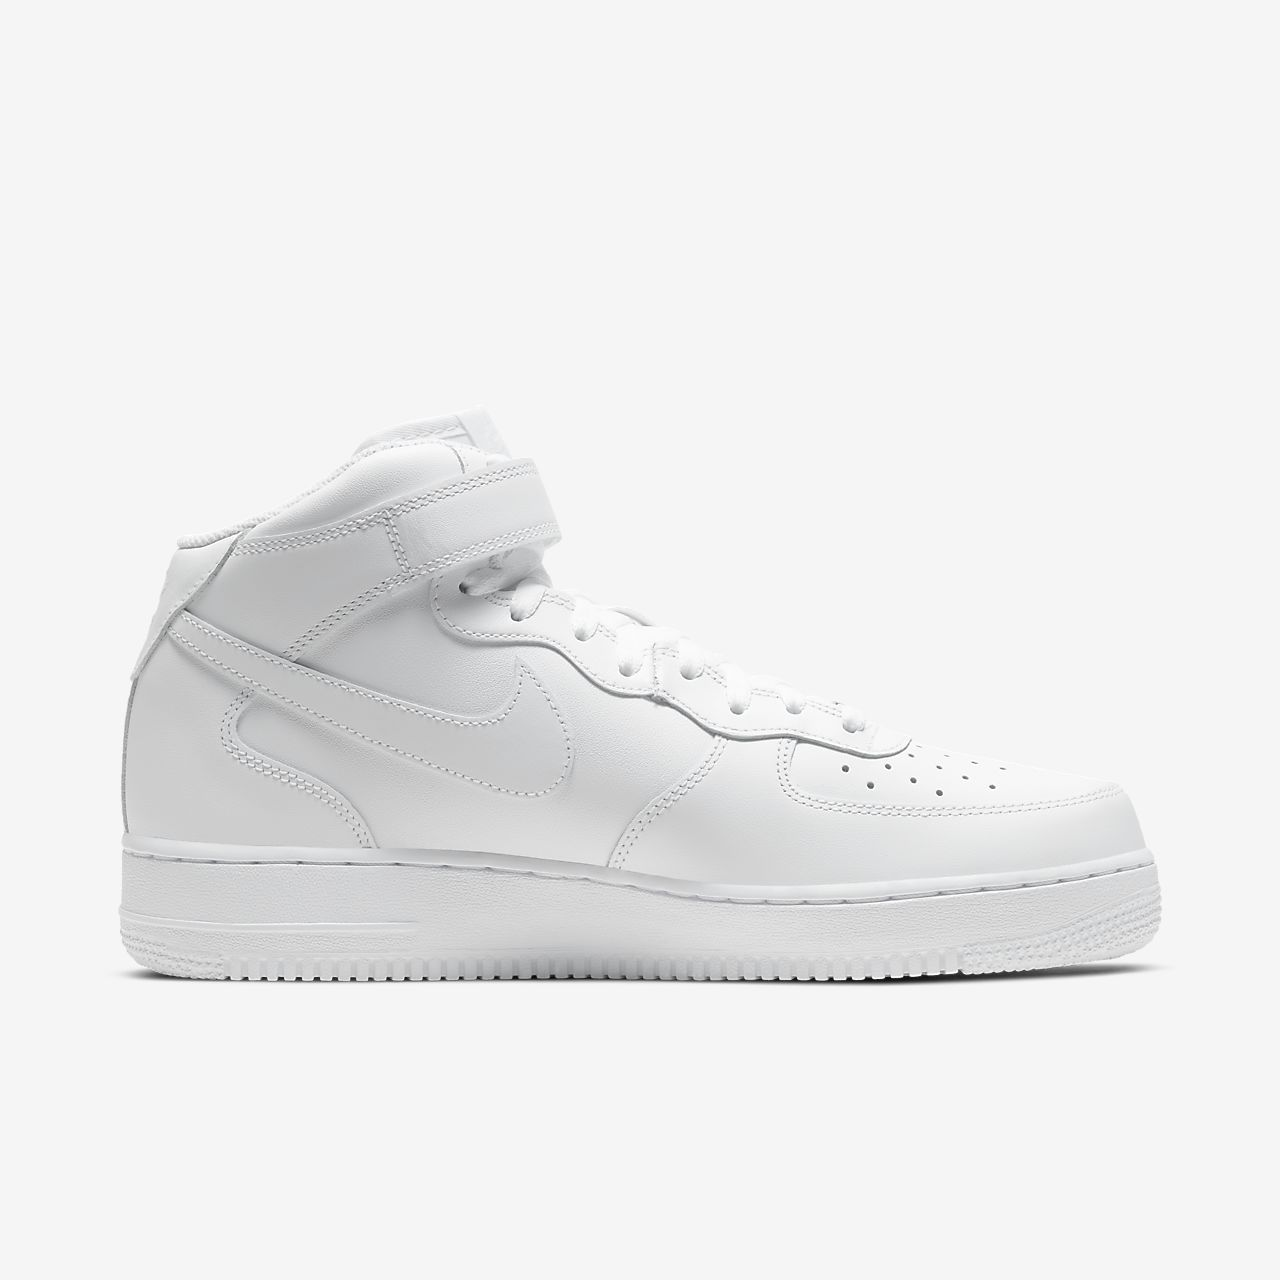 nike men's air force 1 mid nz